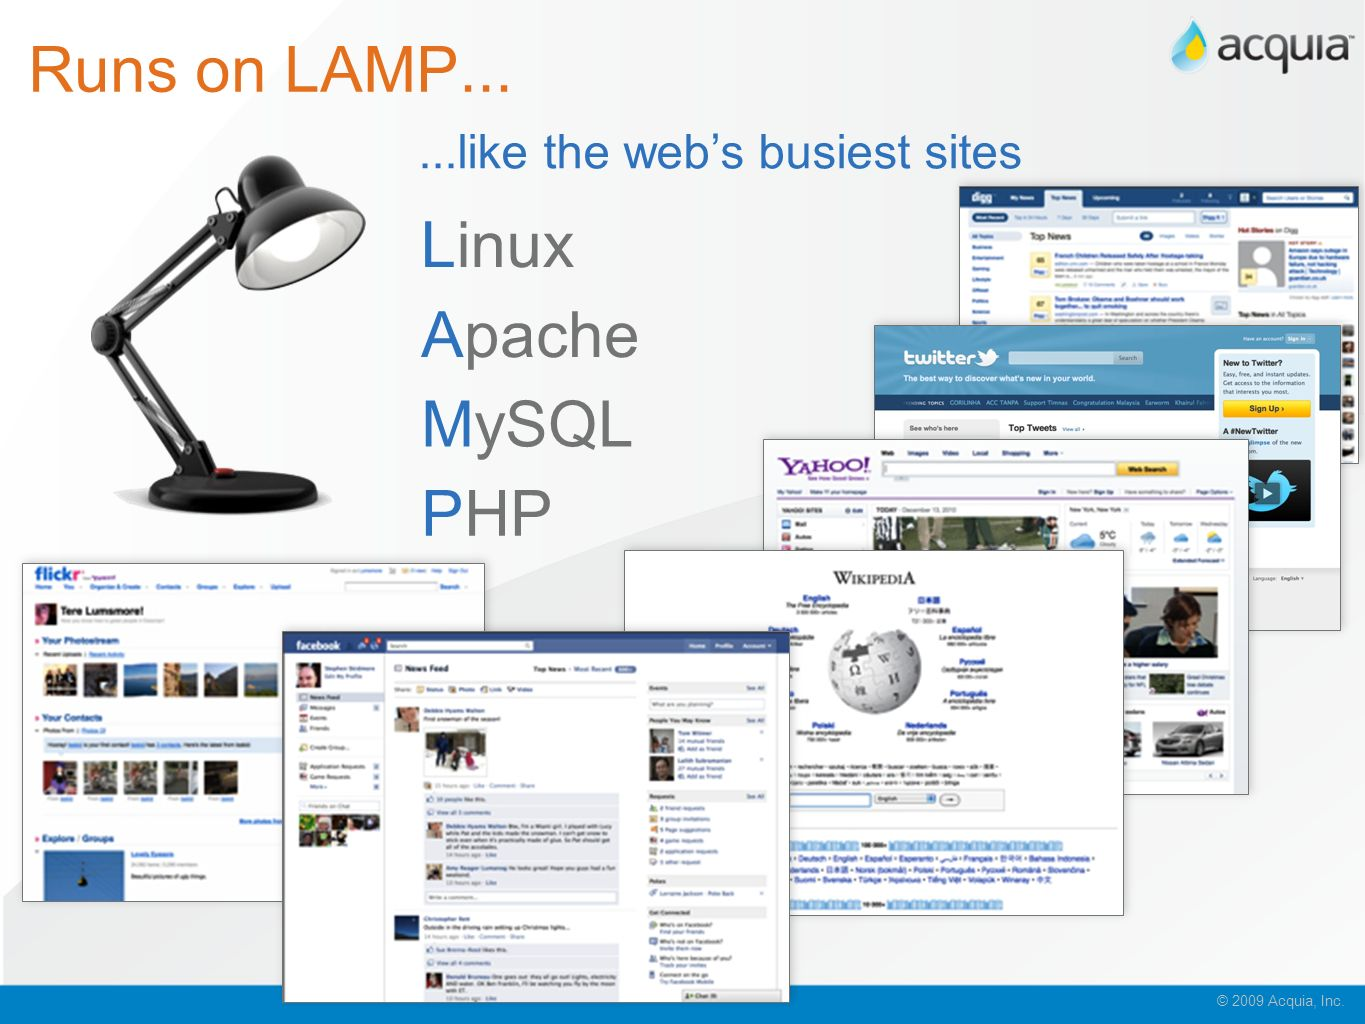 Runs on LAMP... Linux Apache MySQL PHP ...like the web's busiest sites